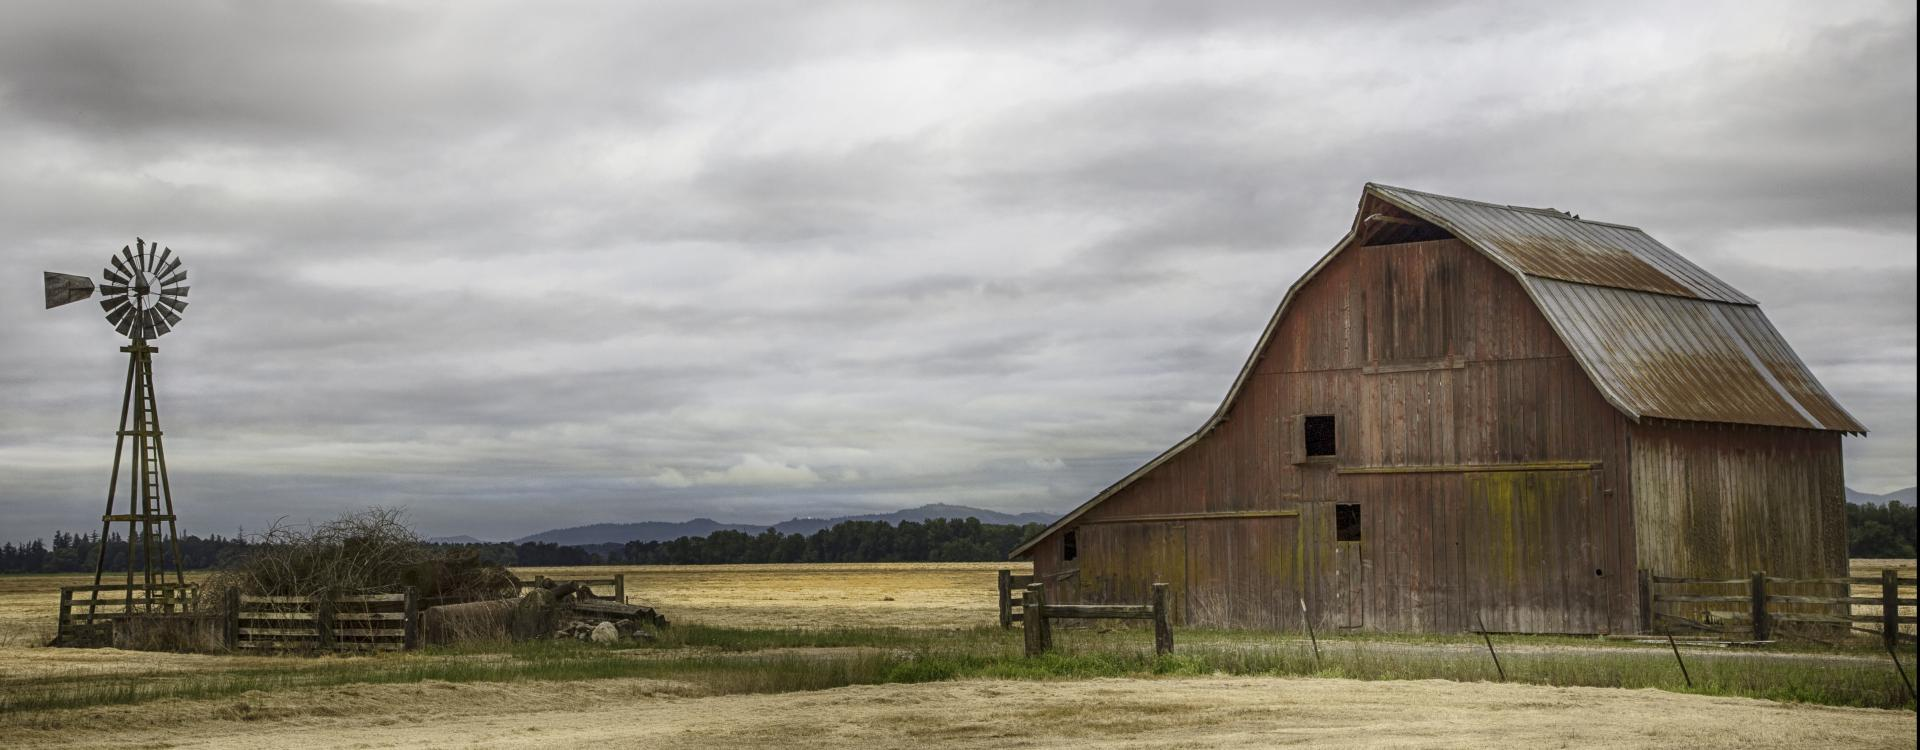 old barn in middle of a field